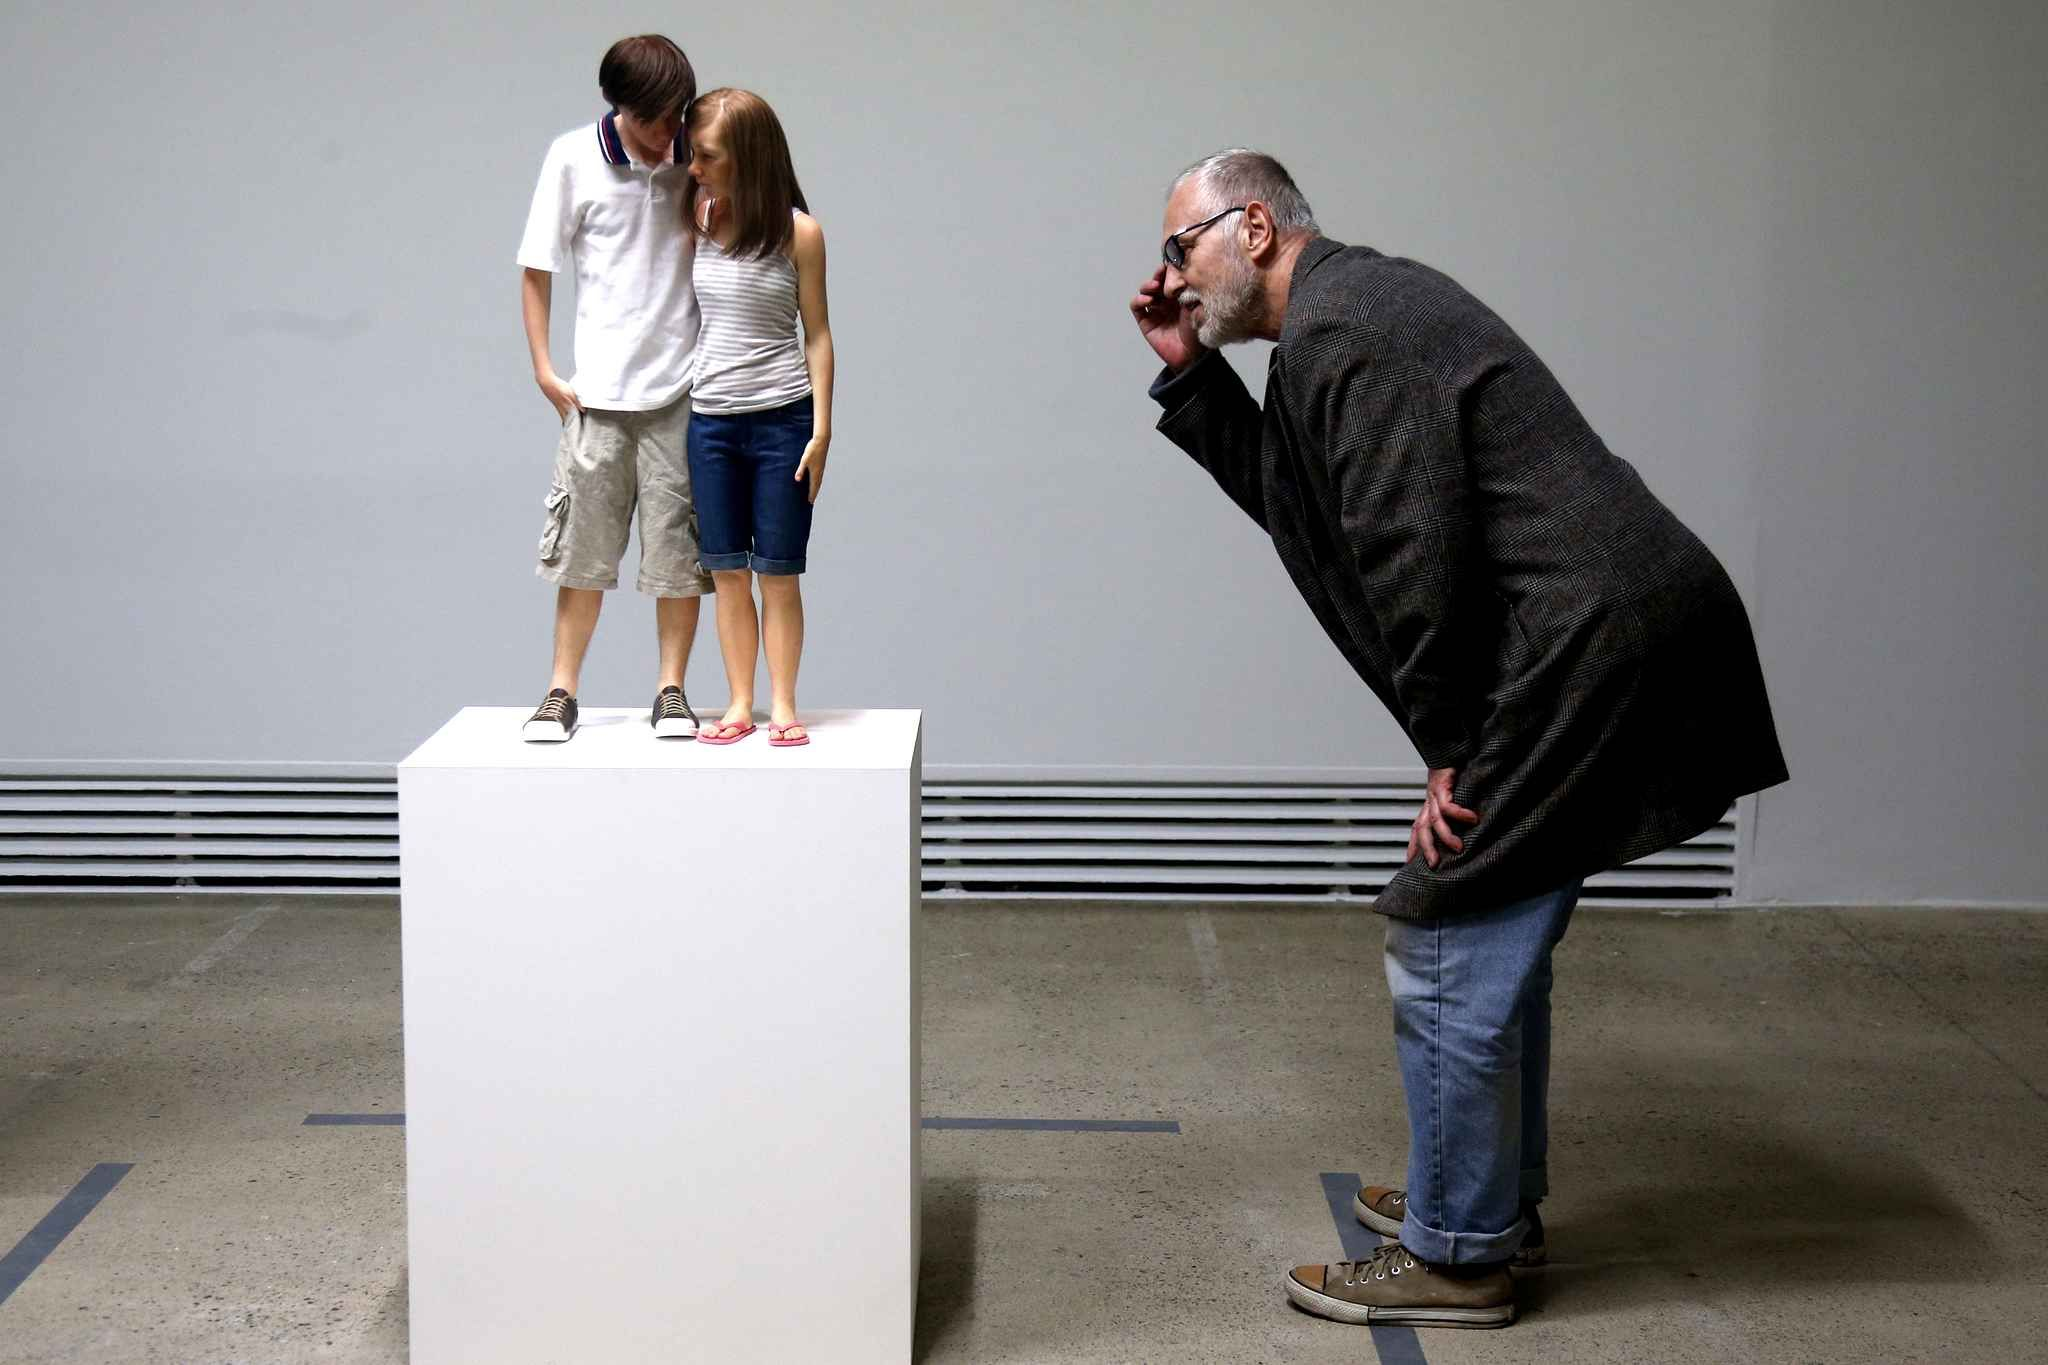 3. Ron Mueck, Young Couple, 2013, 89x43x23 cm).